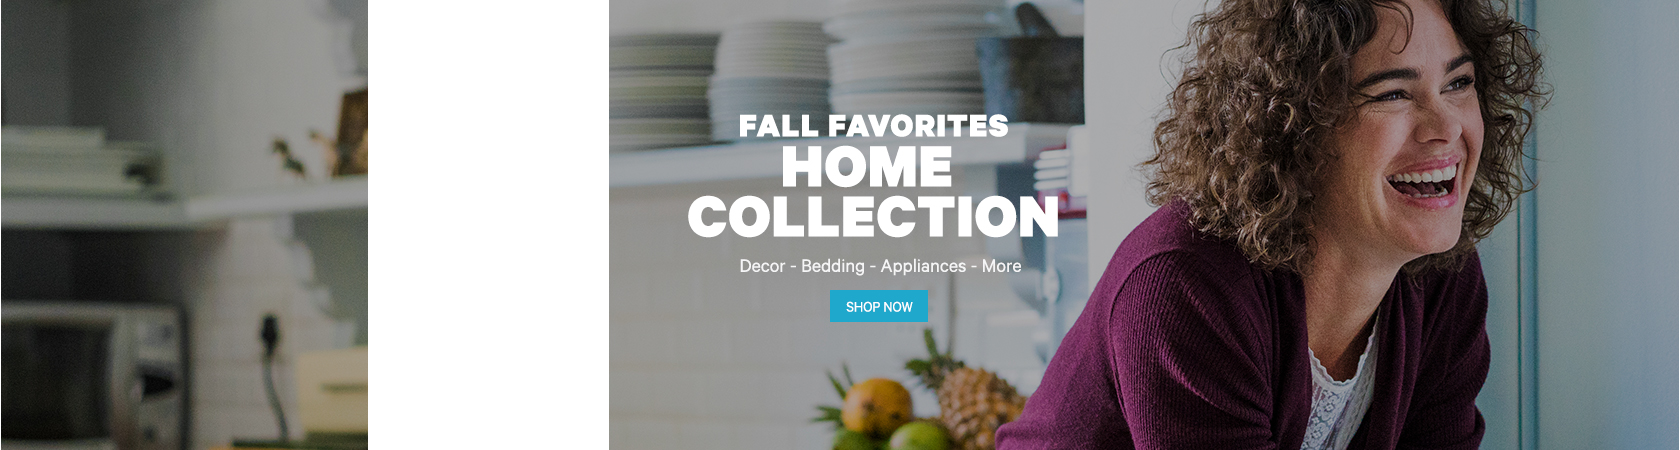 Fall Favorites Home Collection